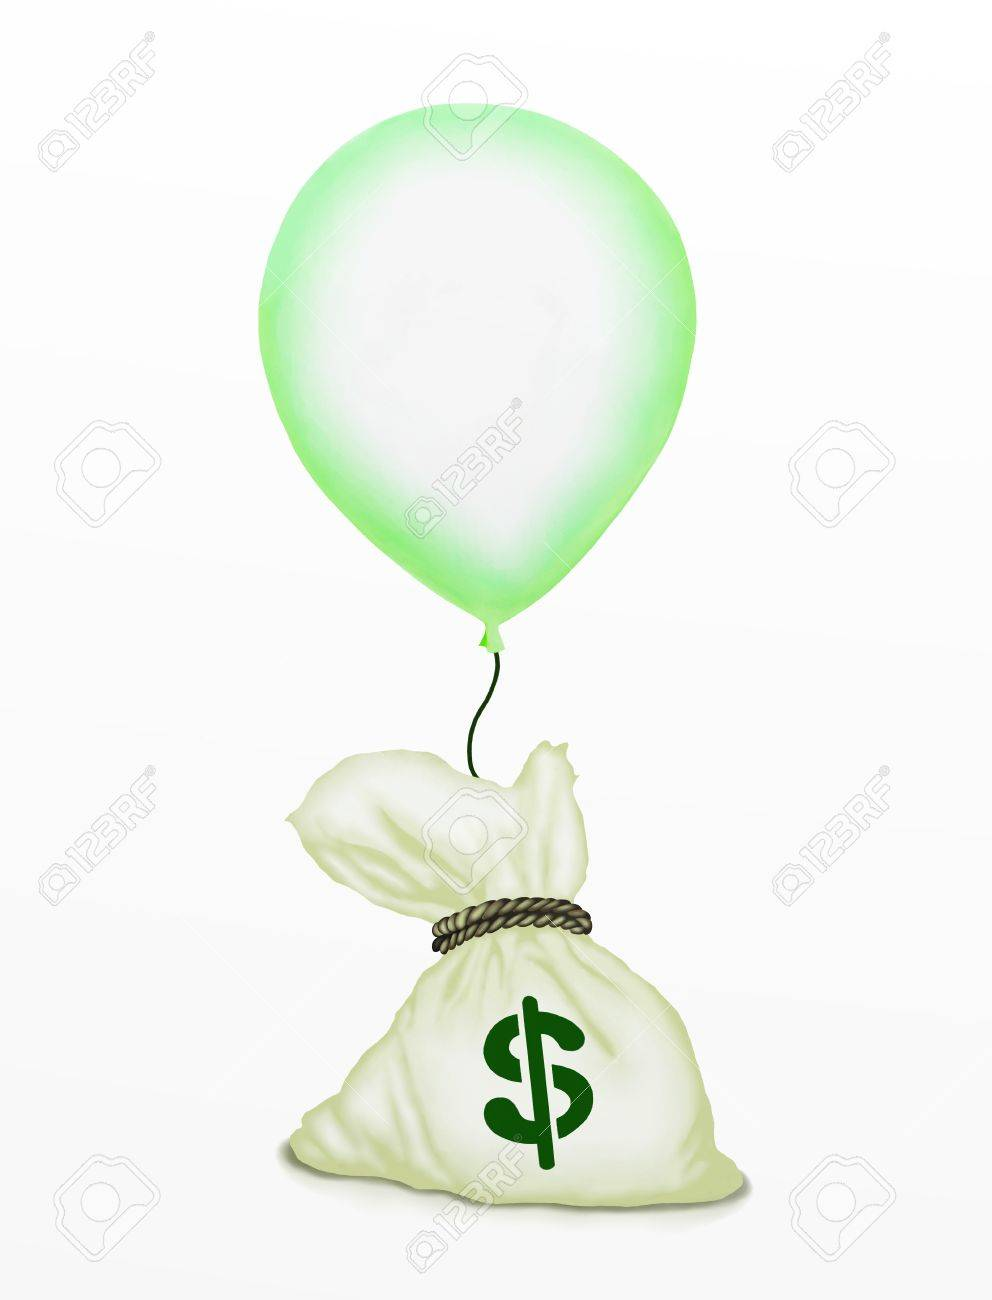 Business Concept   Light Green Flying Balloons Lifting A Bag of Money in The Air, Isolated on White Background Stock Photo - 15618195